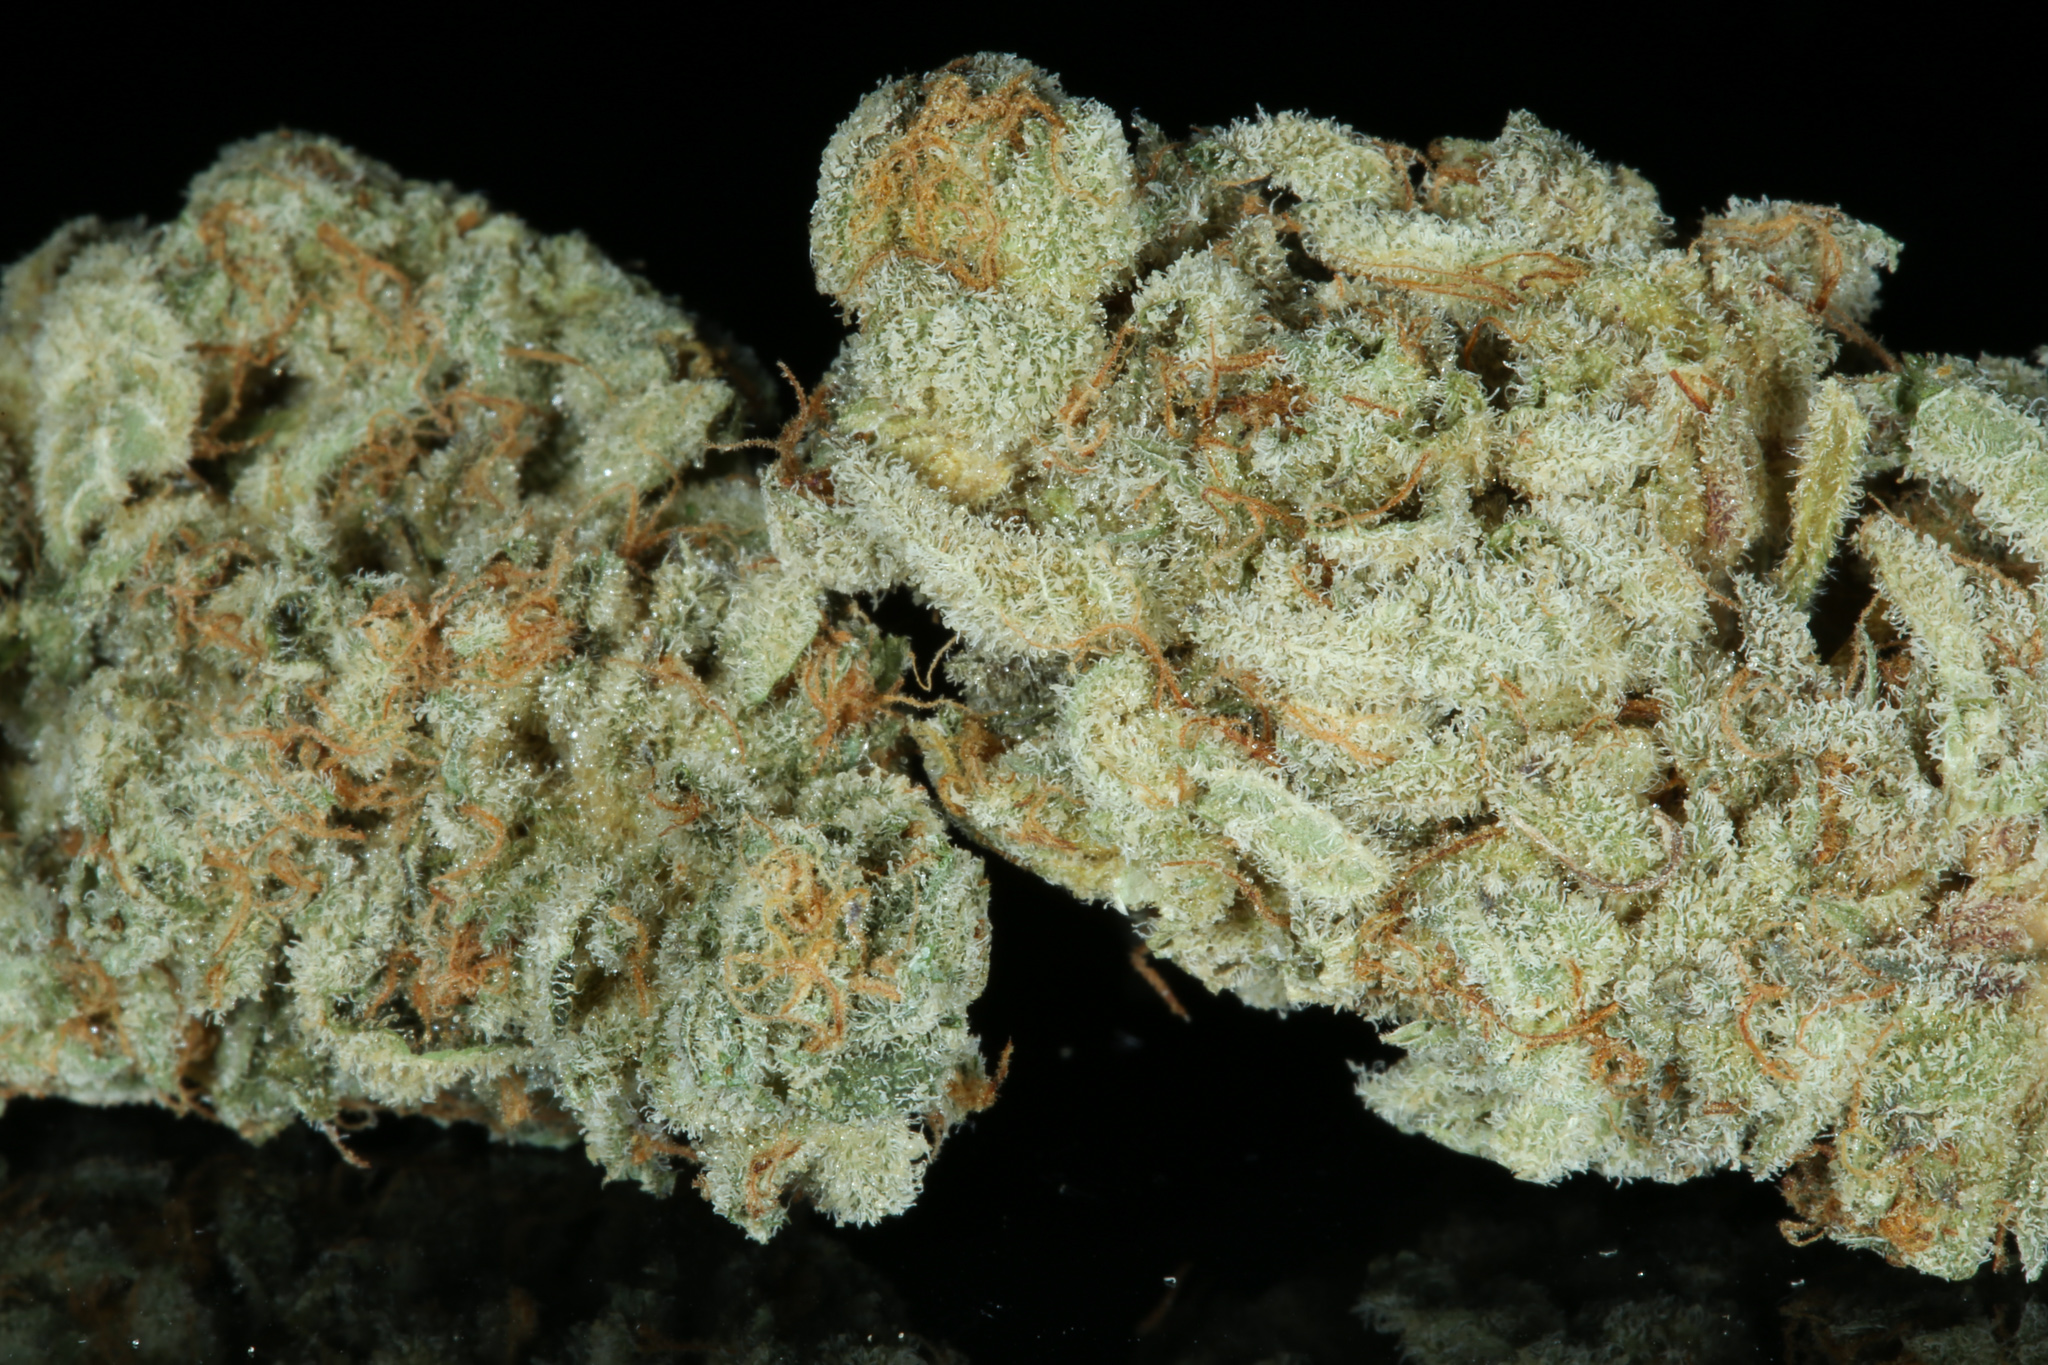 mendo breath dried-4641